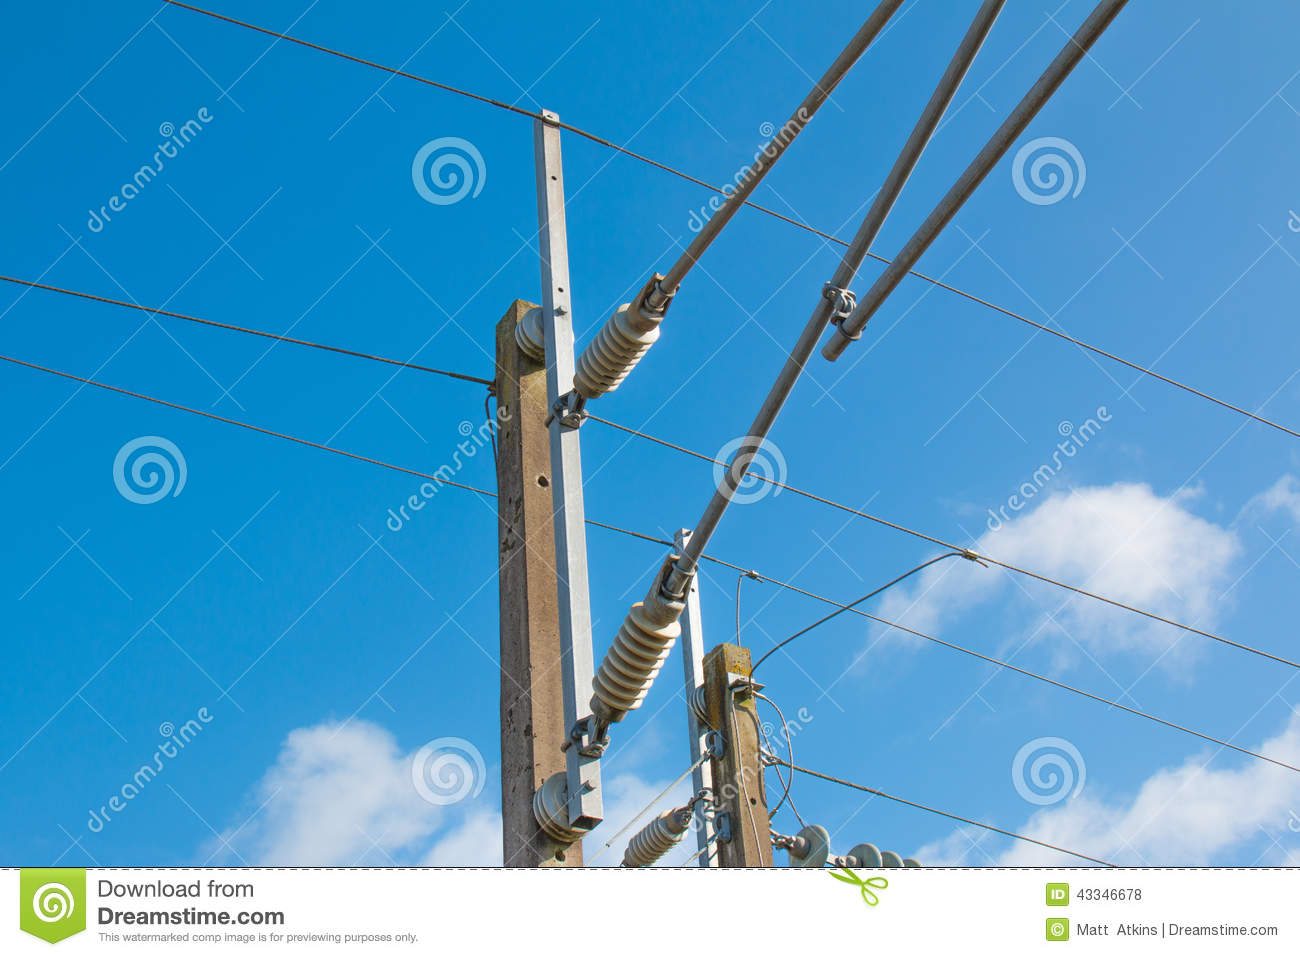 train tracks power line and power pole stock photo image Telephone Clip Art Man On a Telaphone Pole